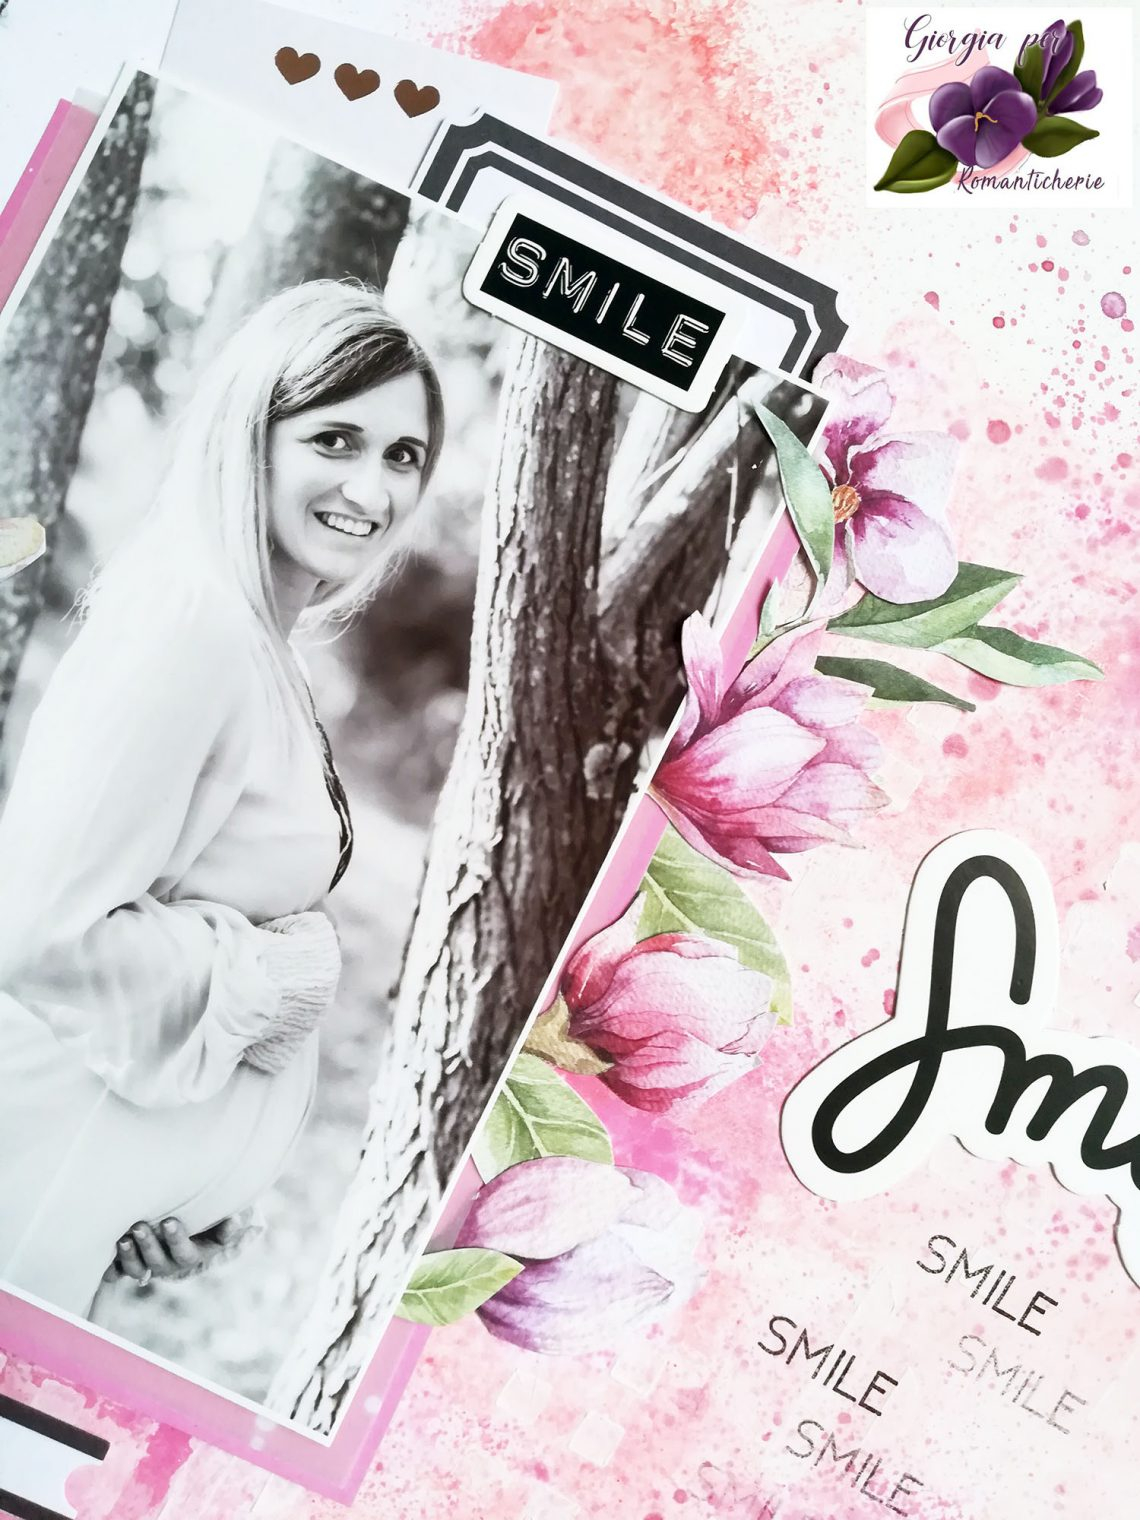 Romanticherie – mixed media layout tutorial